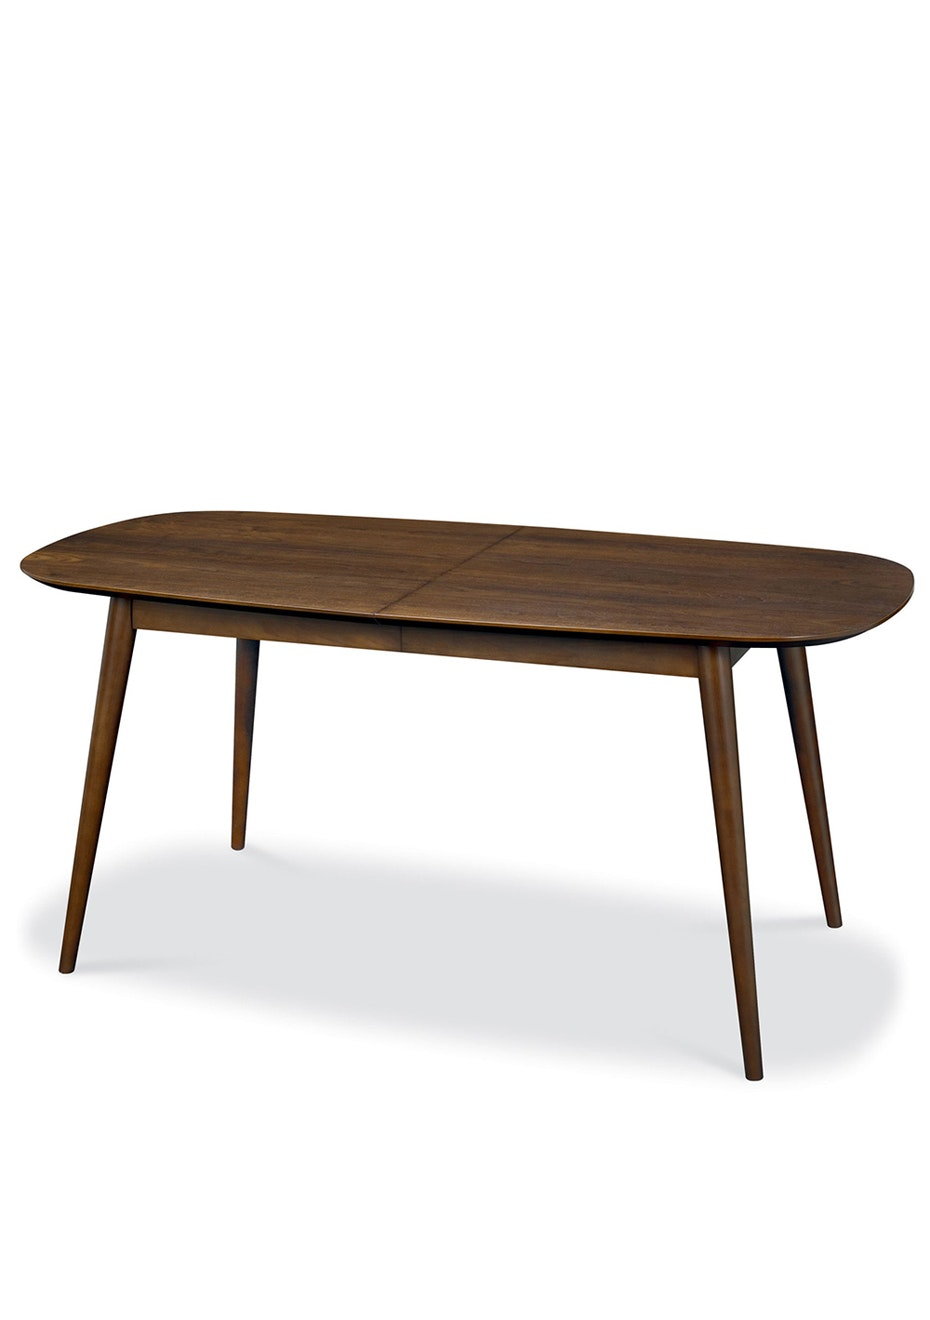 Furniture By Design - Oslo Extension Dining Table- Walnut Veneers and Solid Walnut